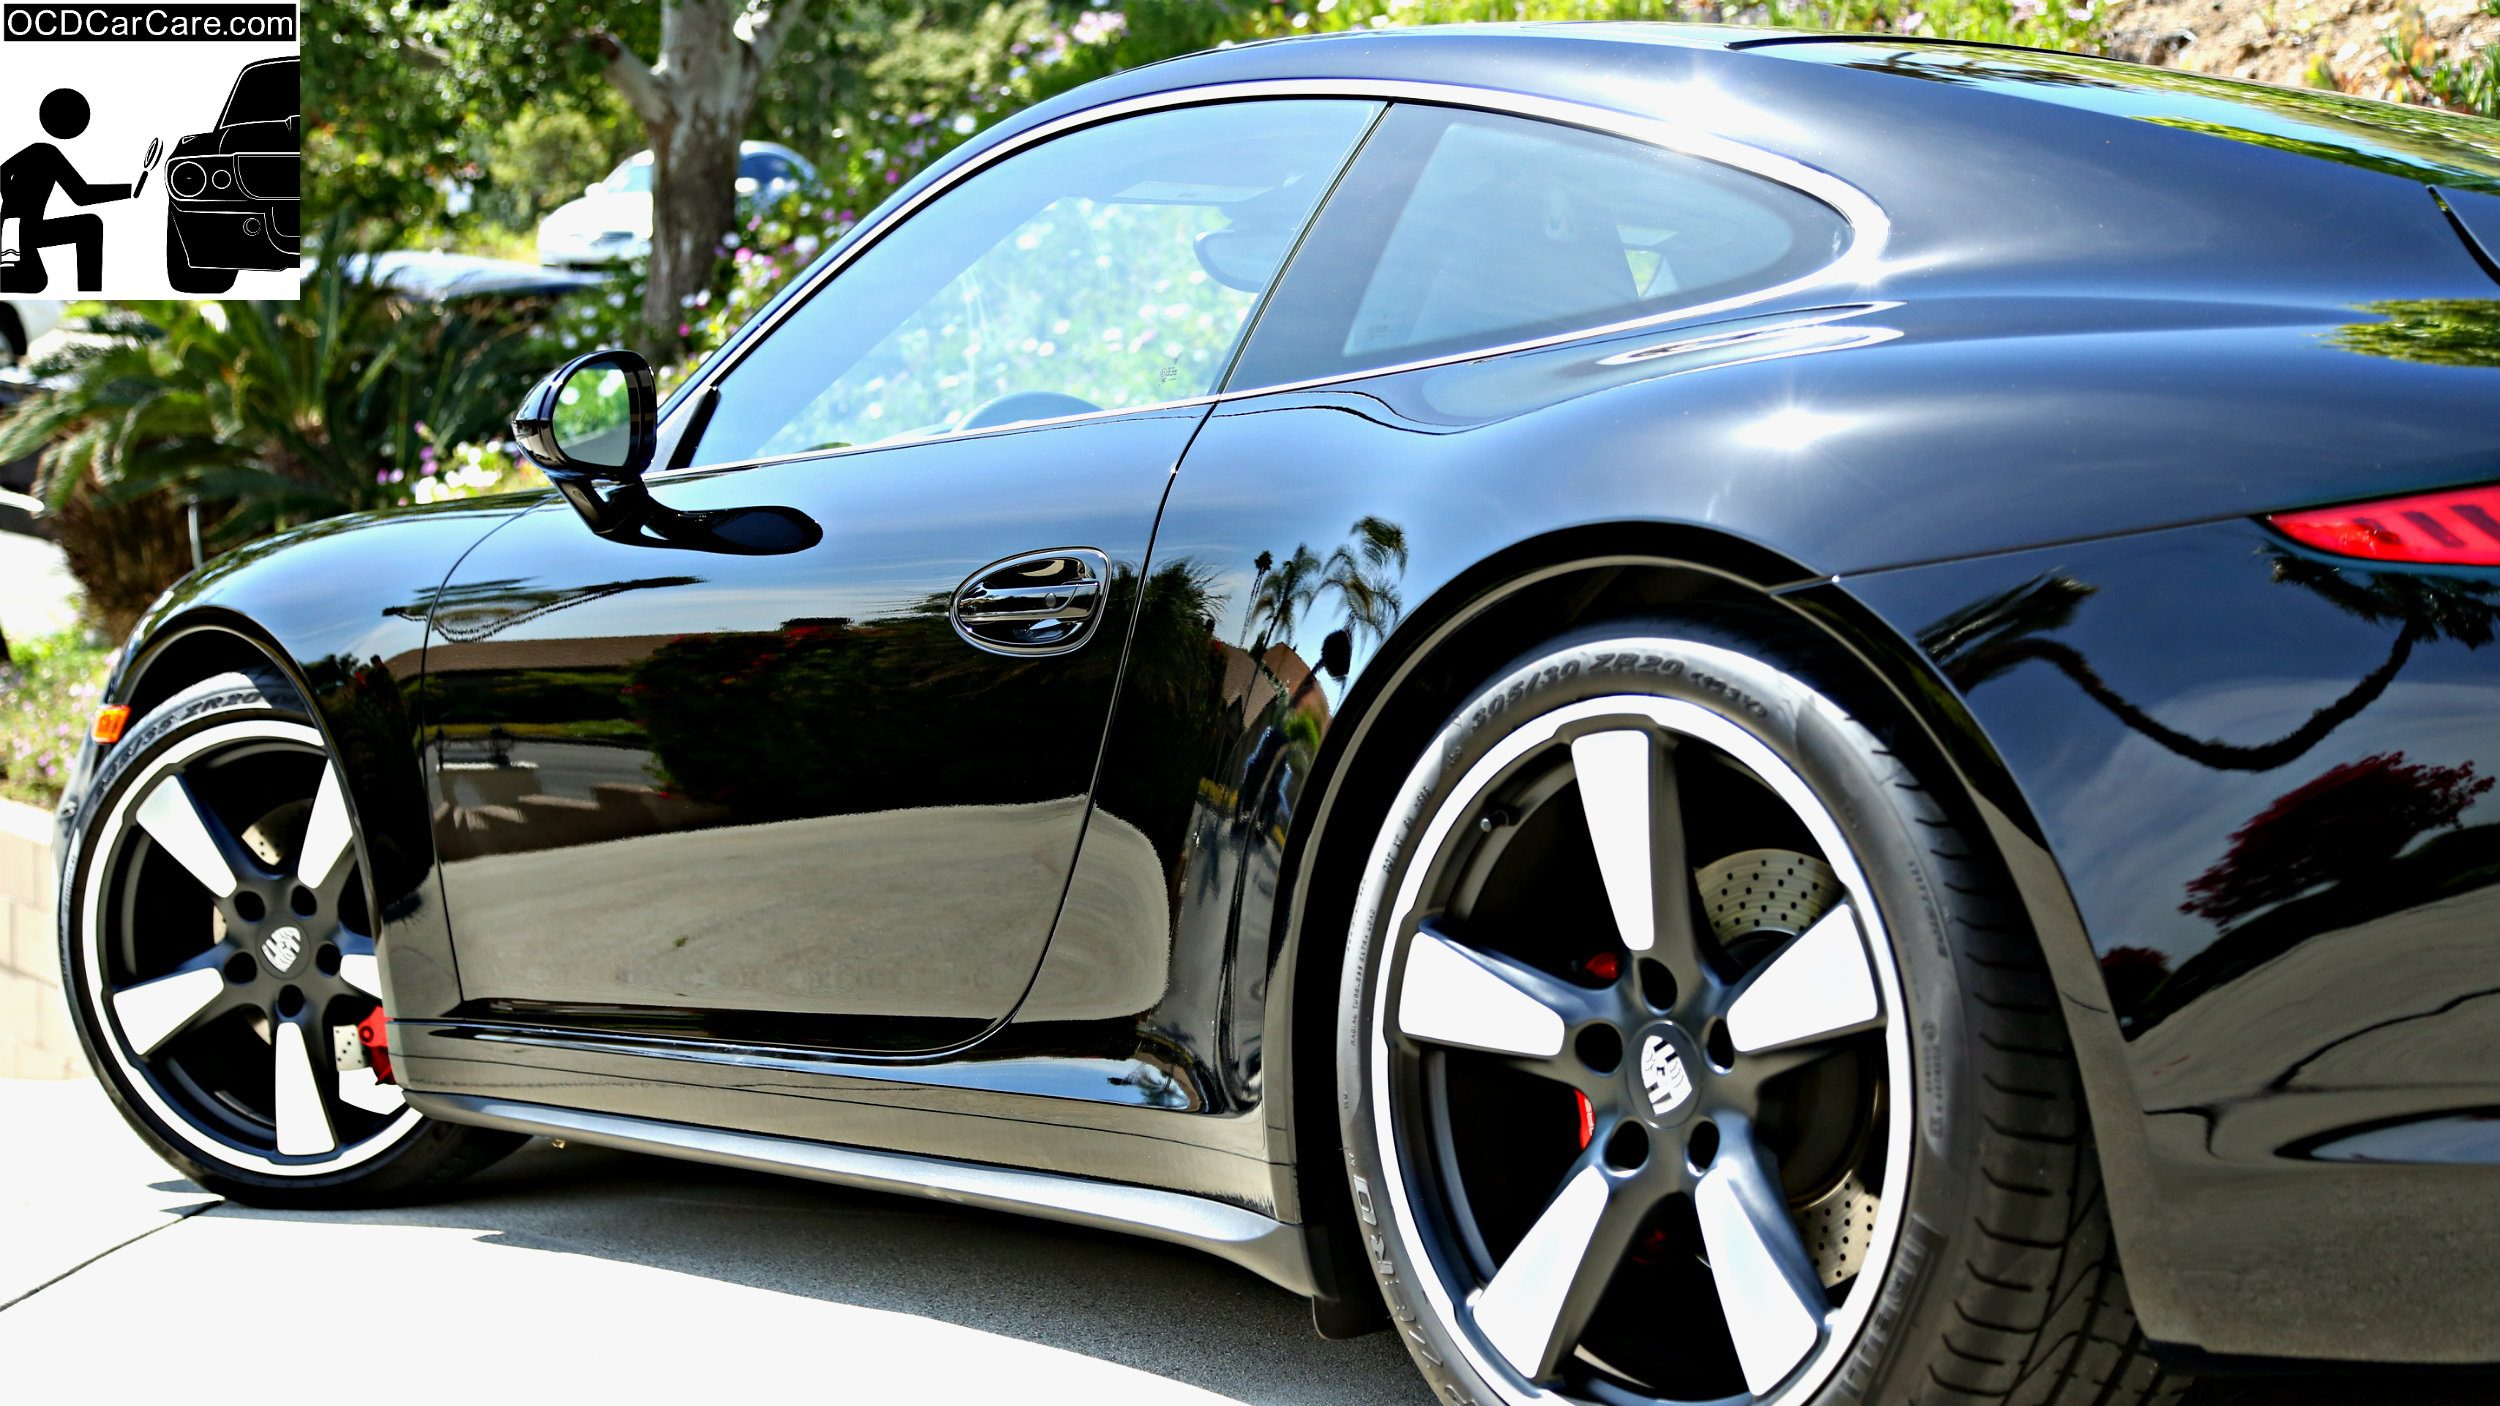 Maintenance for Ceramic Nano Coatings requires a different detailing than traditional technology as explained by OCDCarCare Los Angeles.